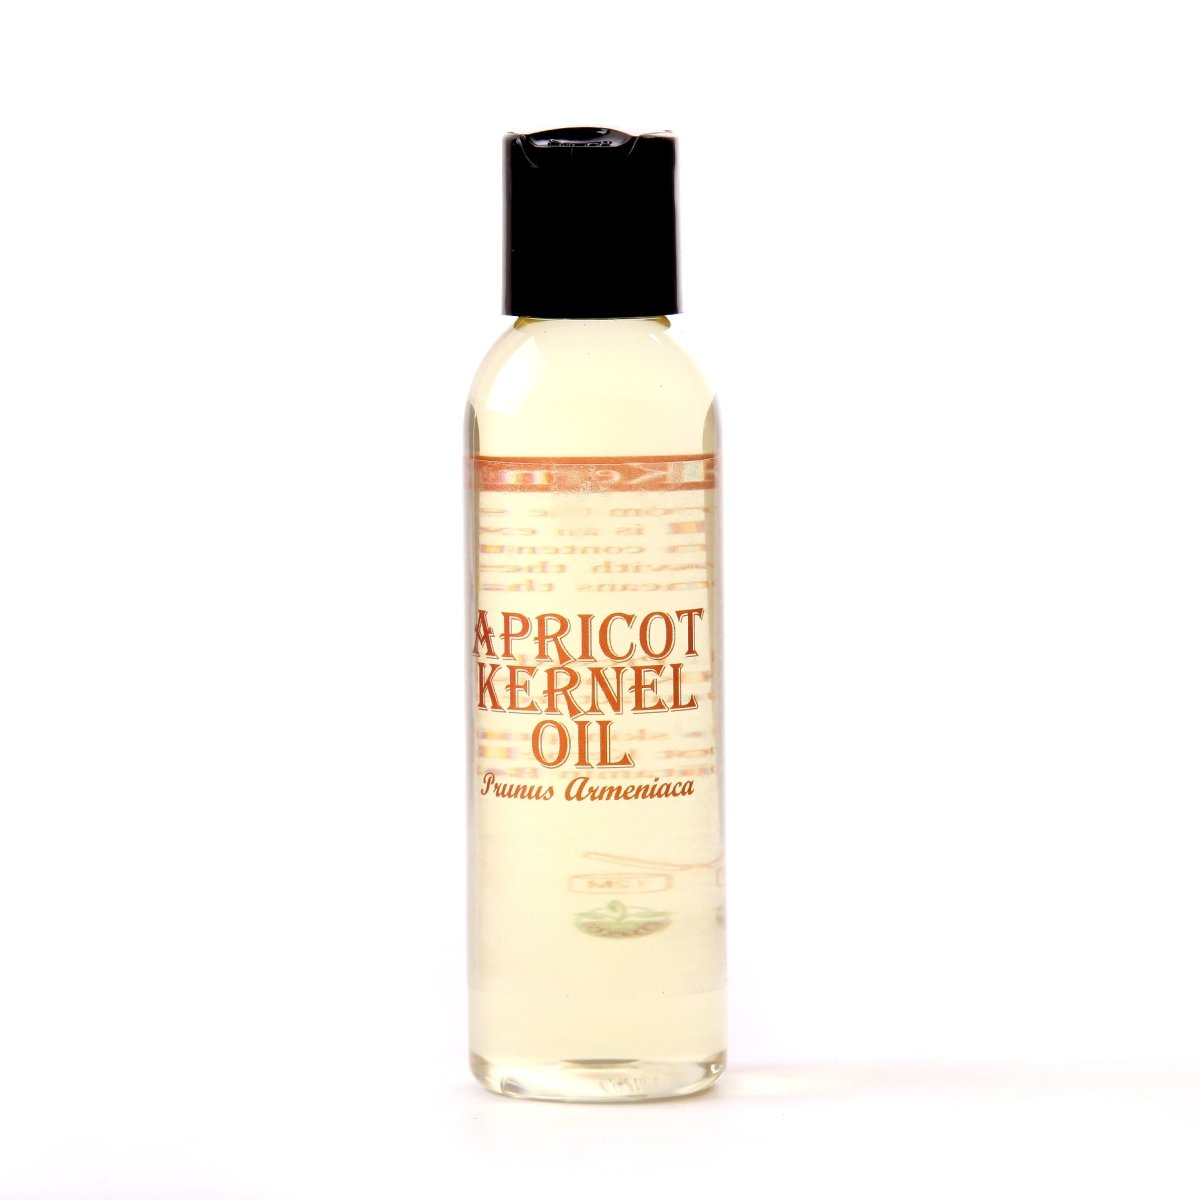 Apricot Kernel Carrier Oil - Mystic Moments UK